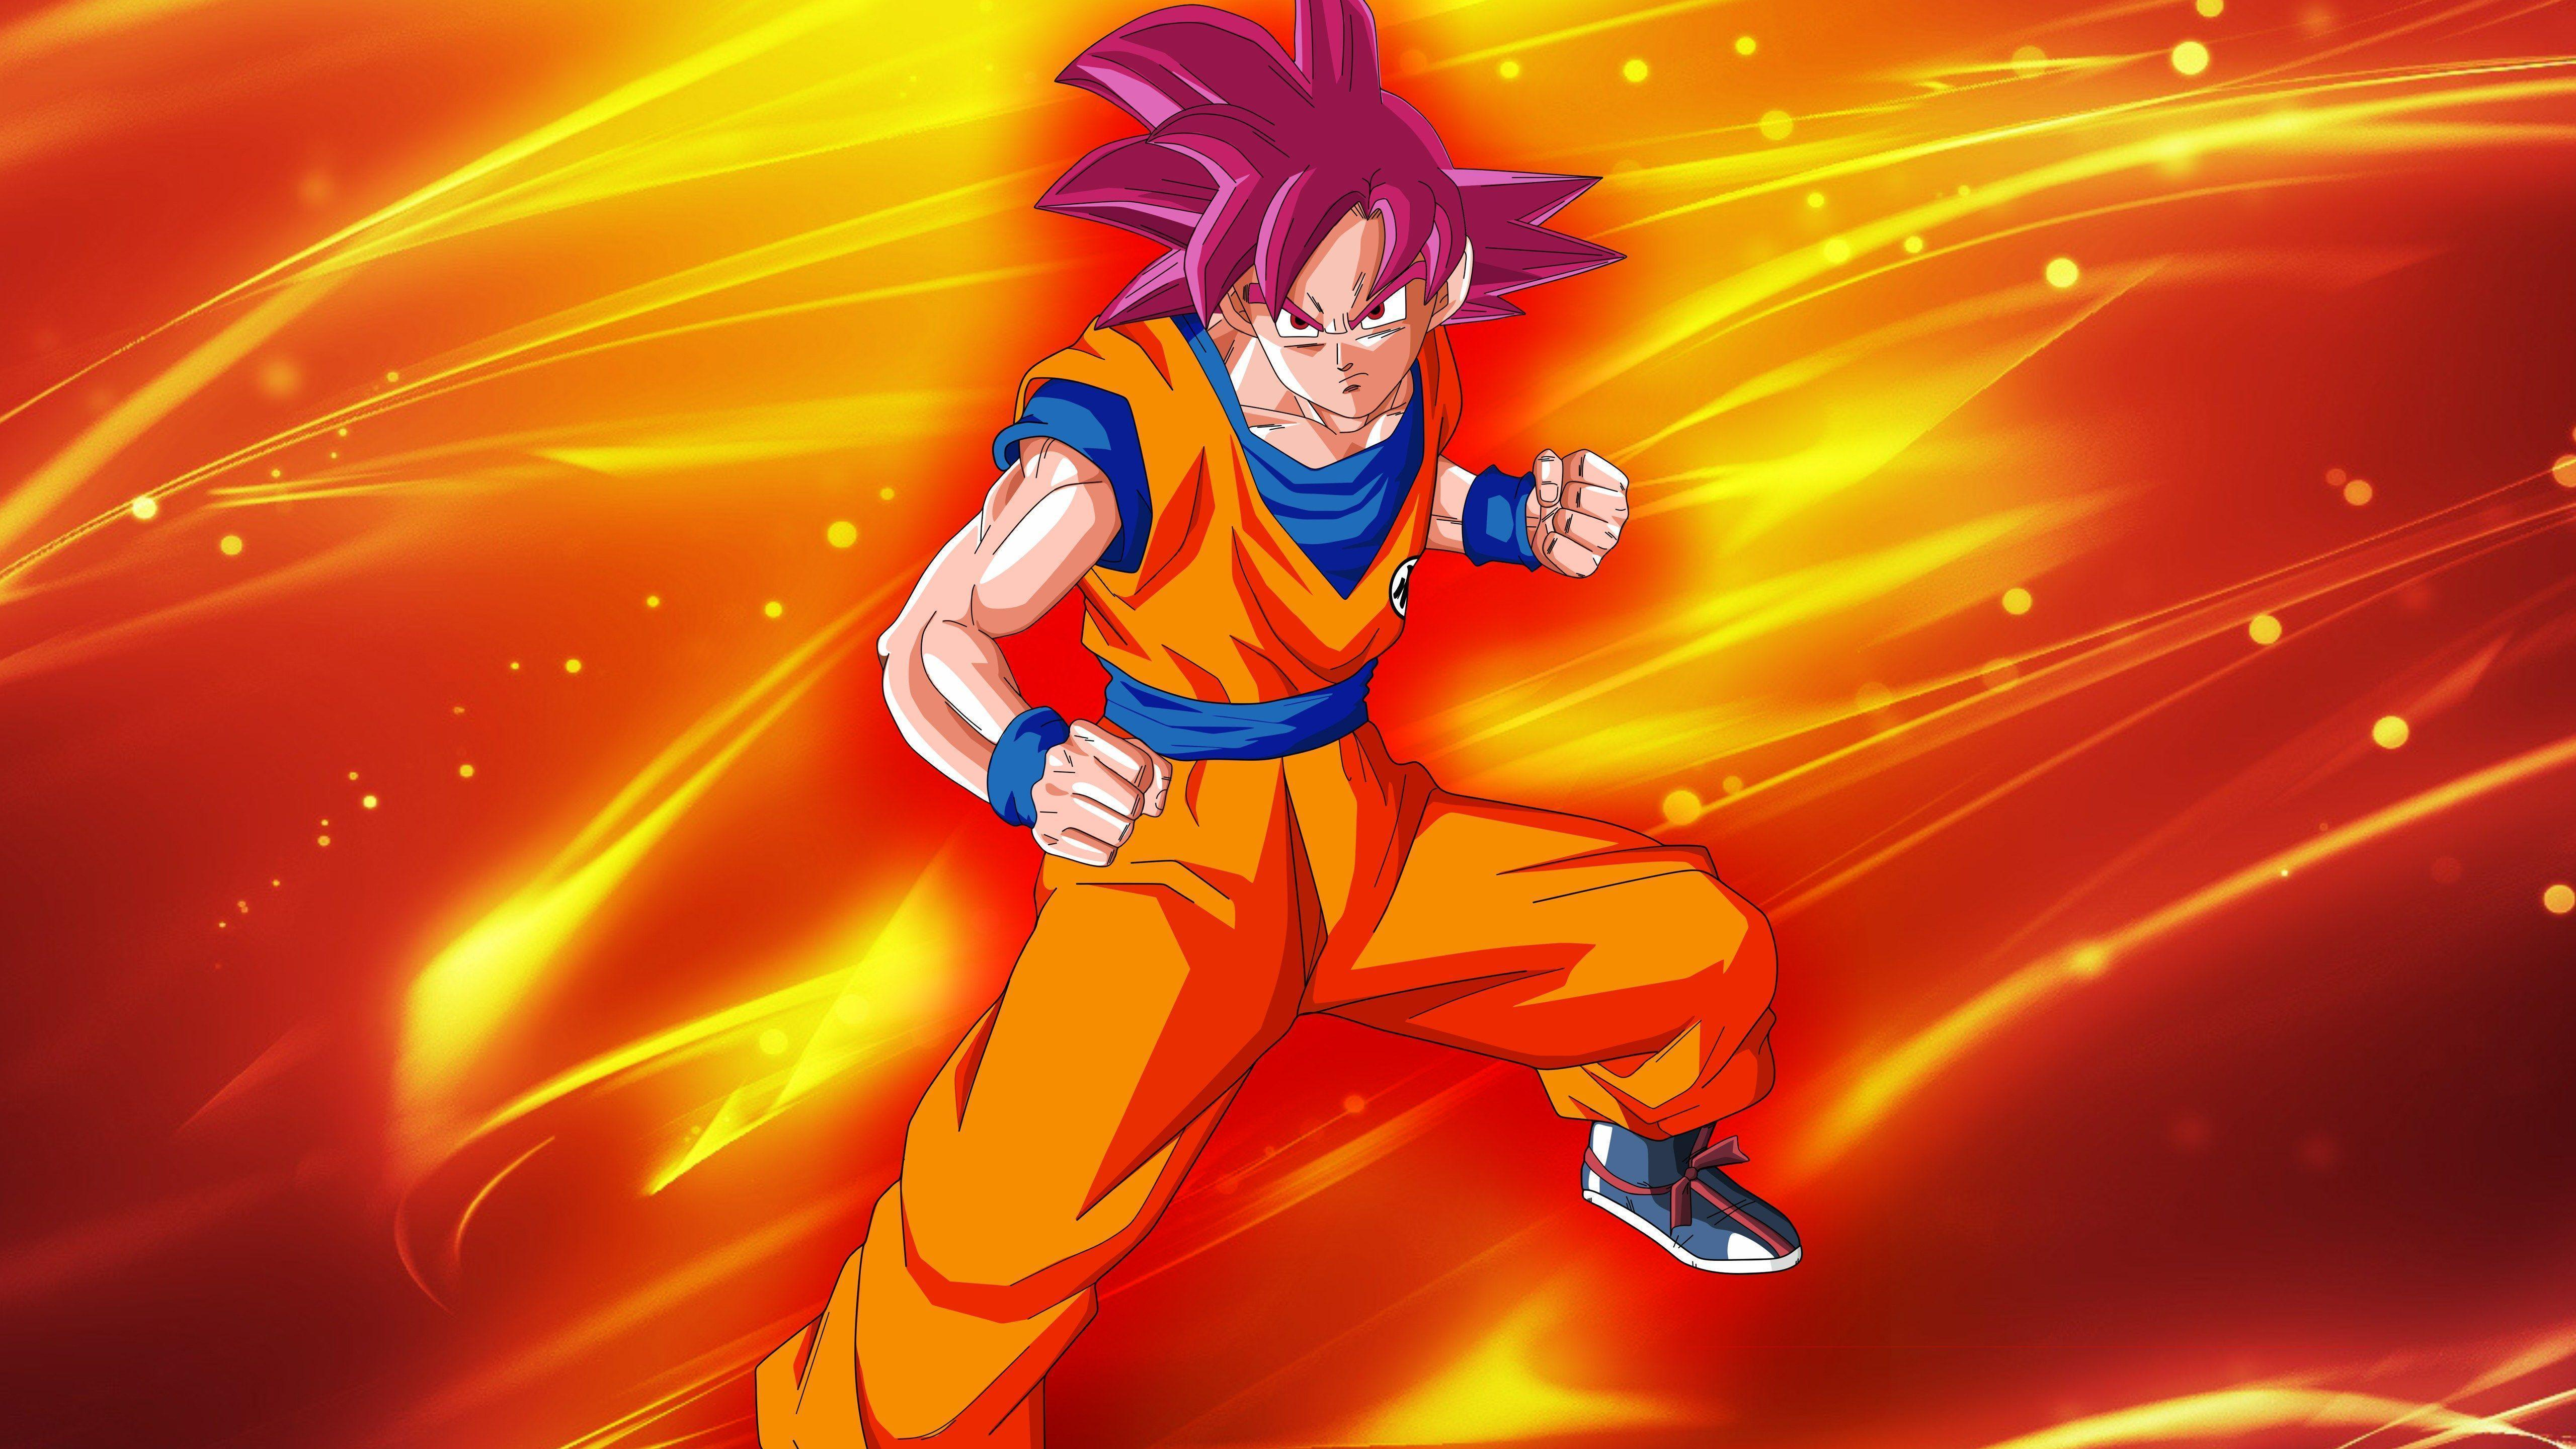 Super Saiyan God Super Saiyan Goku Wallpapers - Wallpaper Cave Dragon Ball Z Goku Super Saiyan 6 Wallpapers